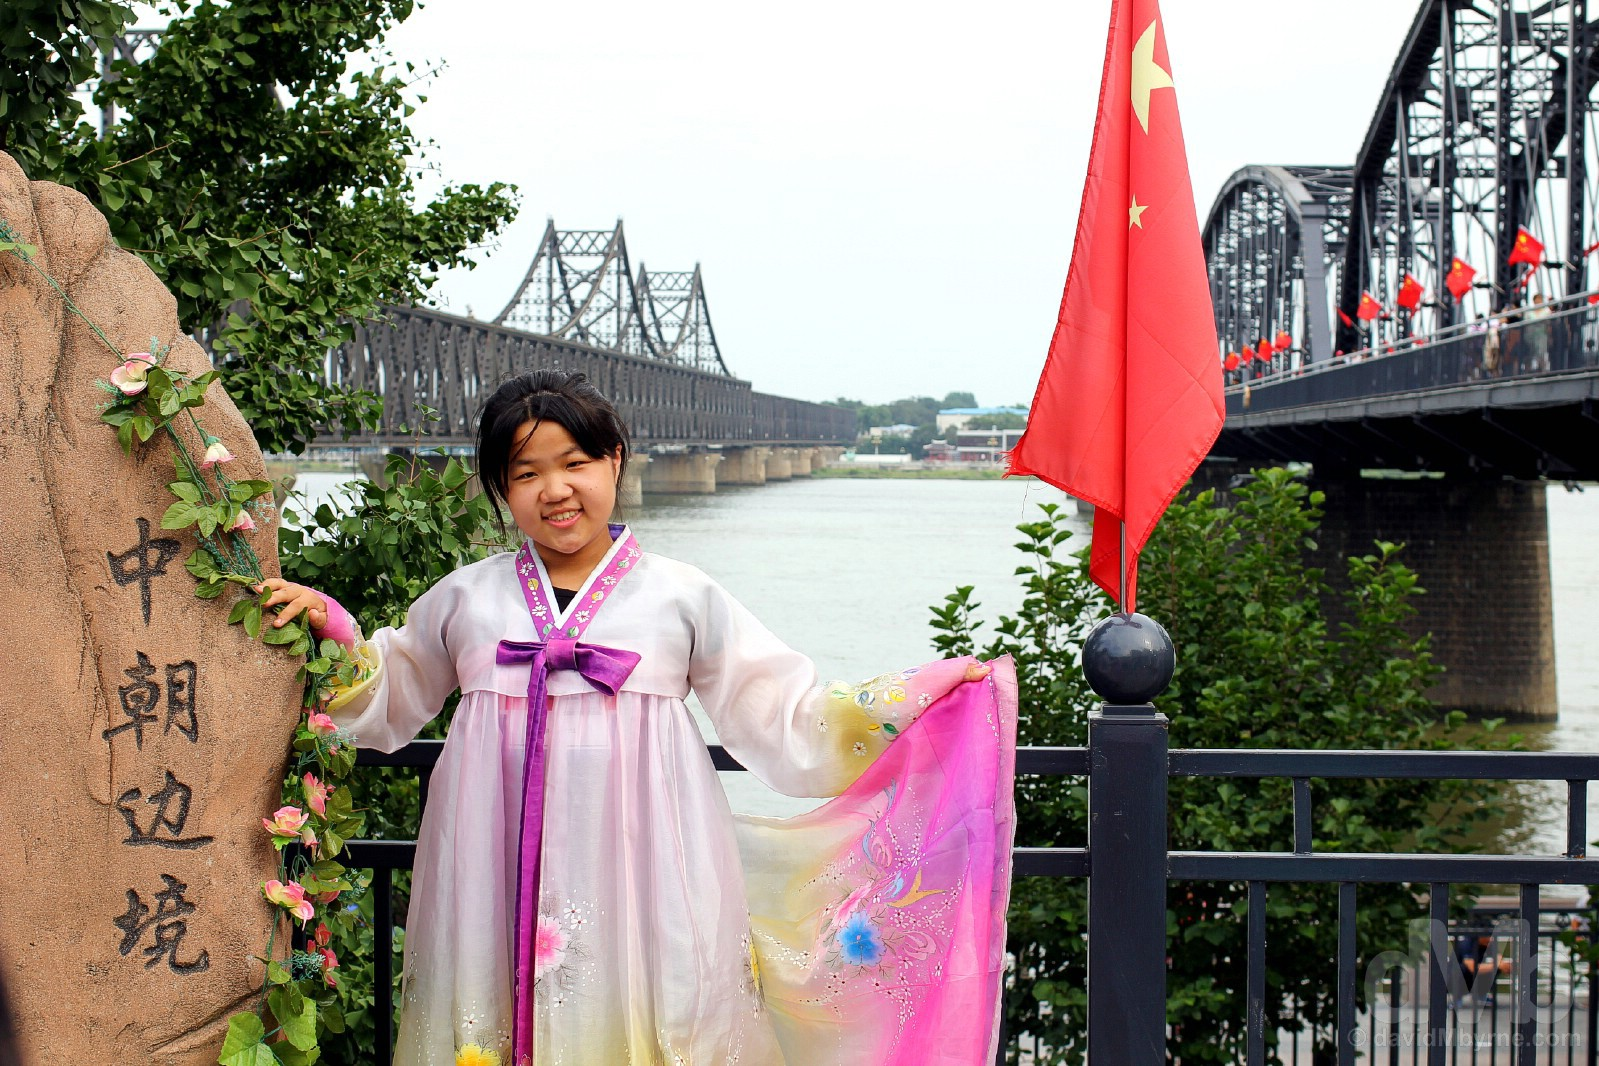 Posing in a traditional Korean hanbok by the edge of the Yalu River in Dandong, Liaoning province, China. August 13, 2017.